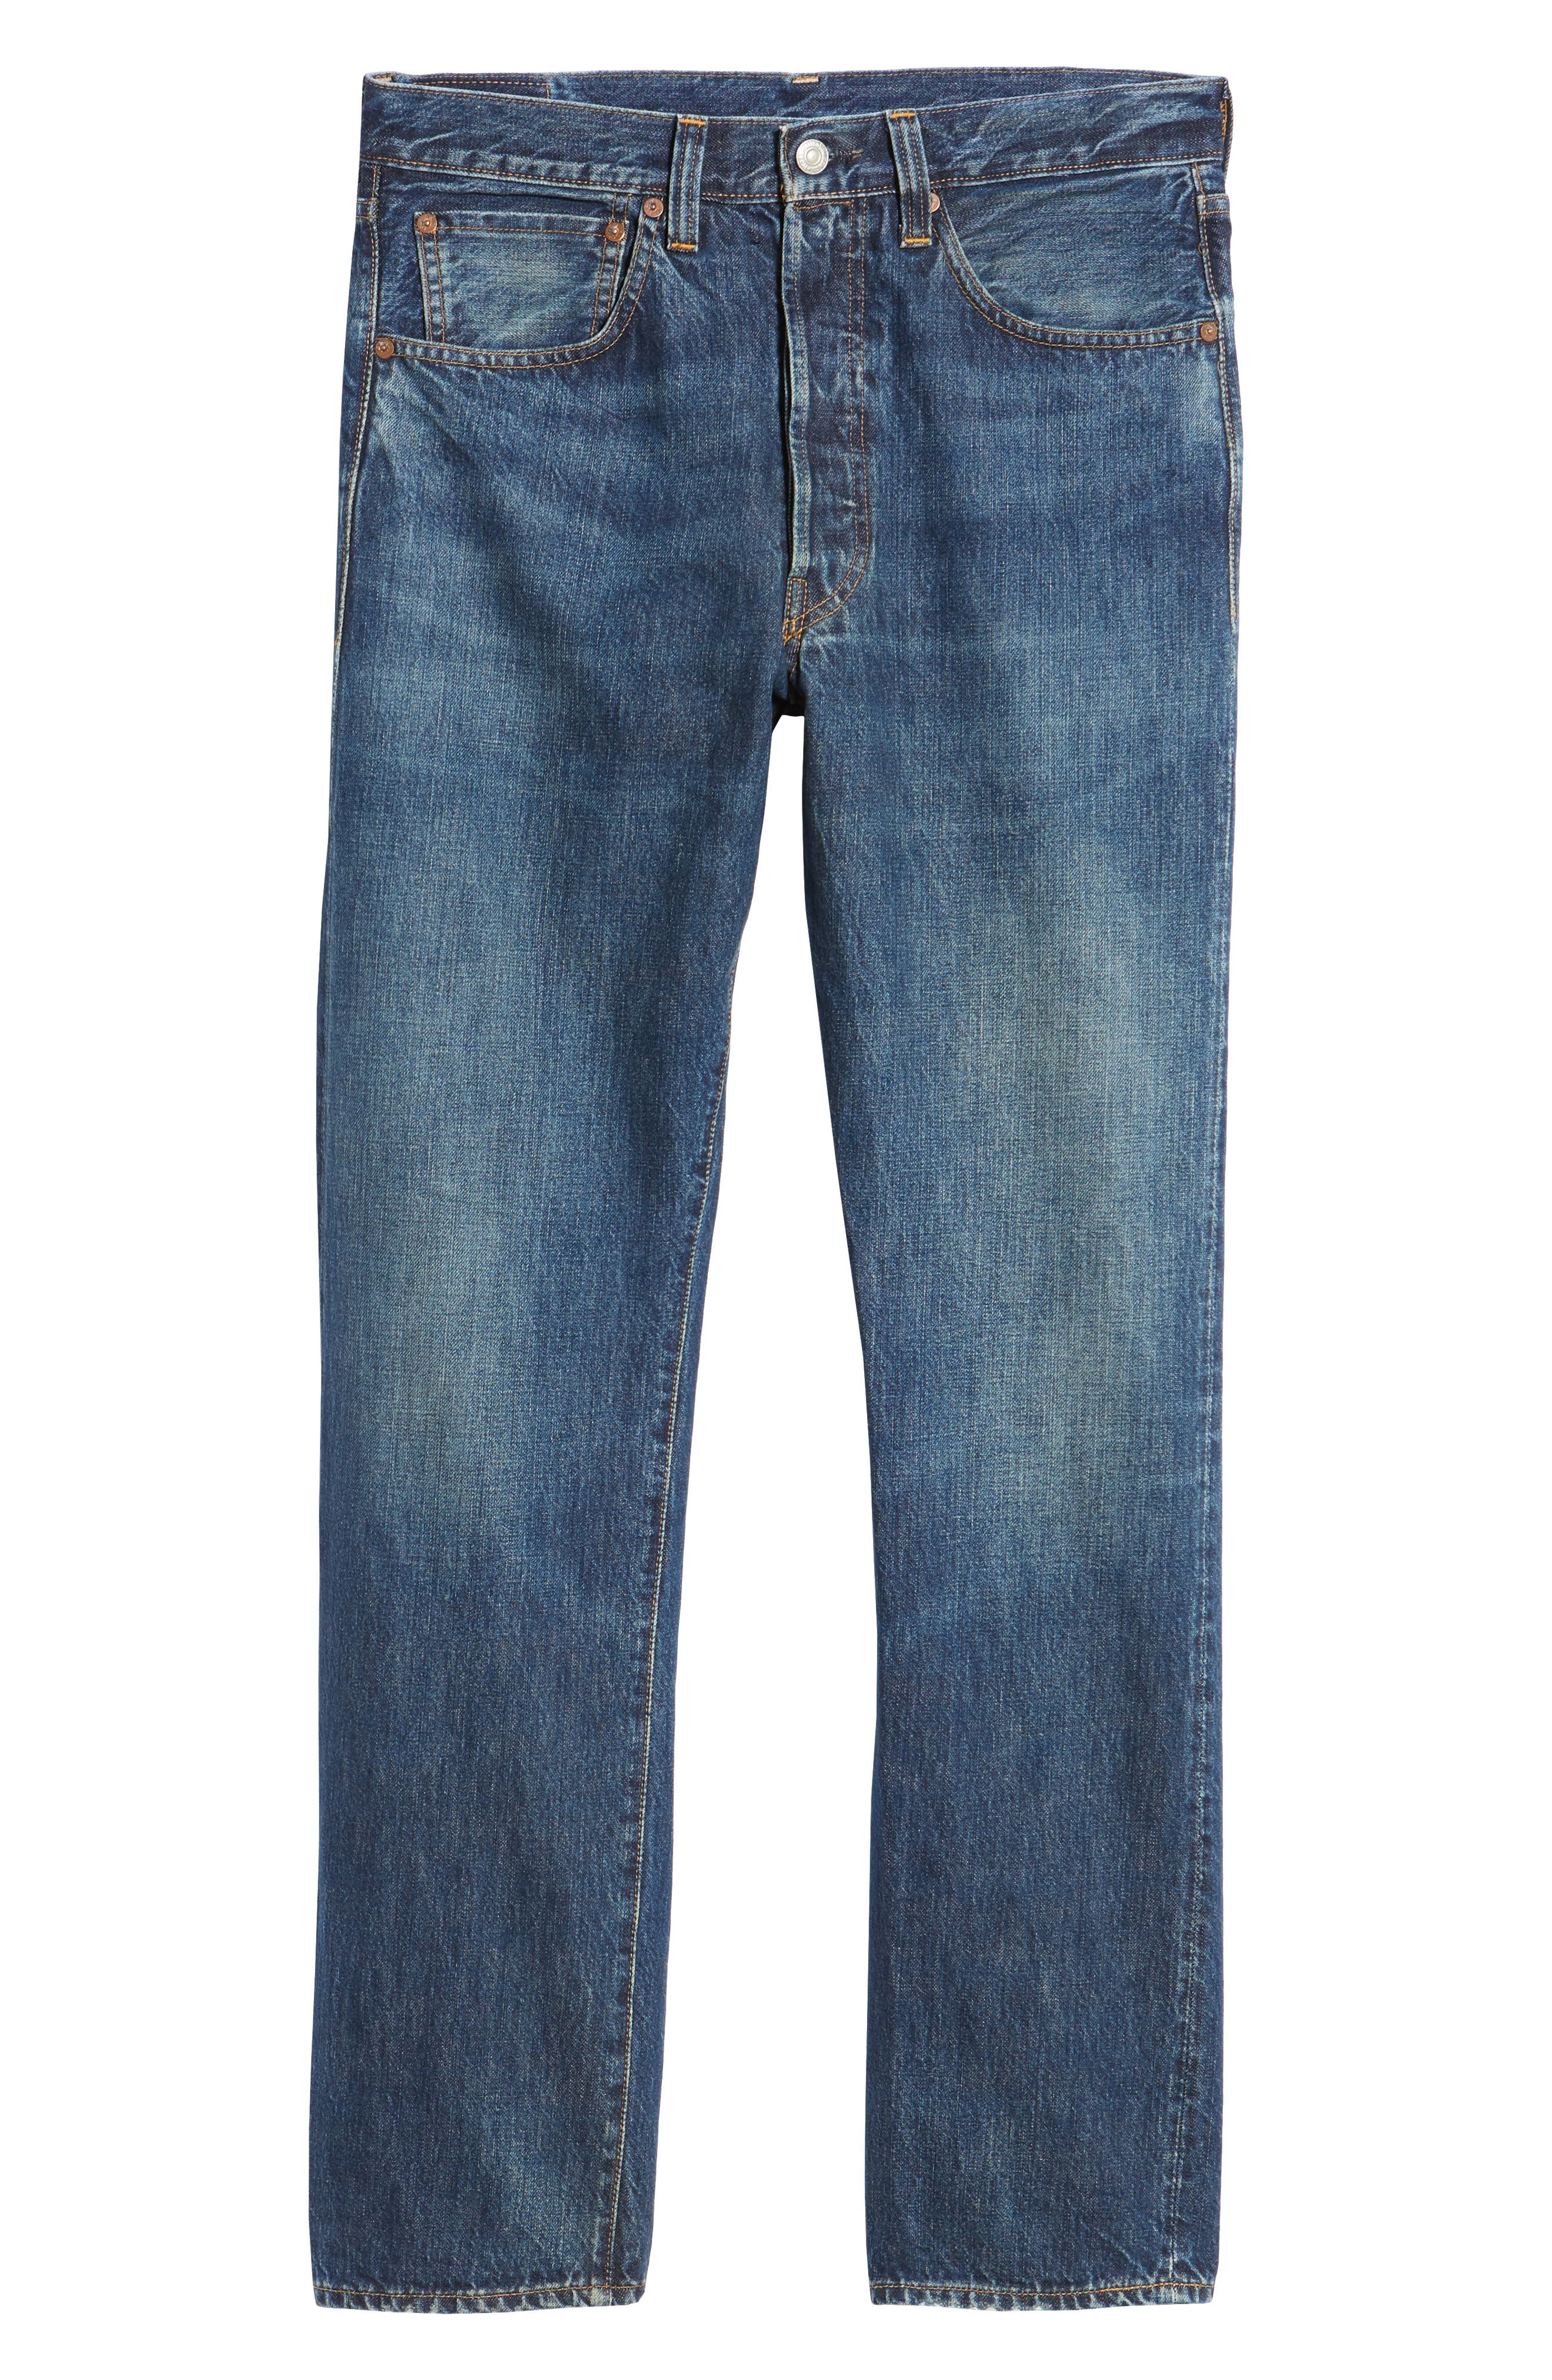 LEVI'S<SUP>®</SUP> VINTAGE CLOTHING, 1947 501<sup>®</sup> Straight Leg Jeans, Alternate thumbnail 6, color, 402